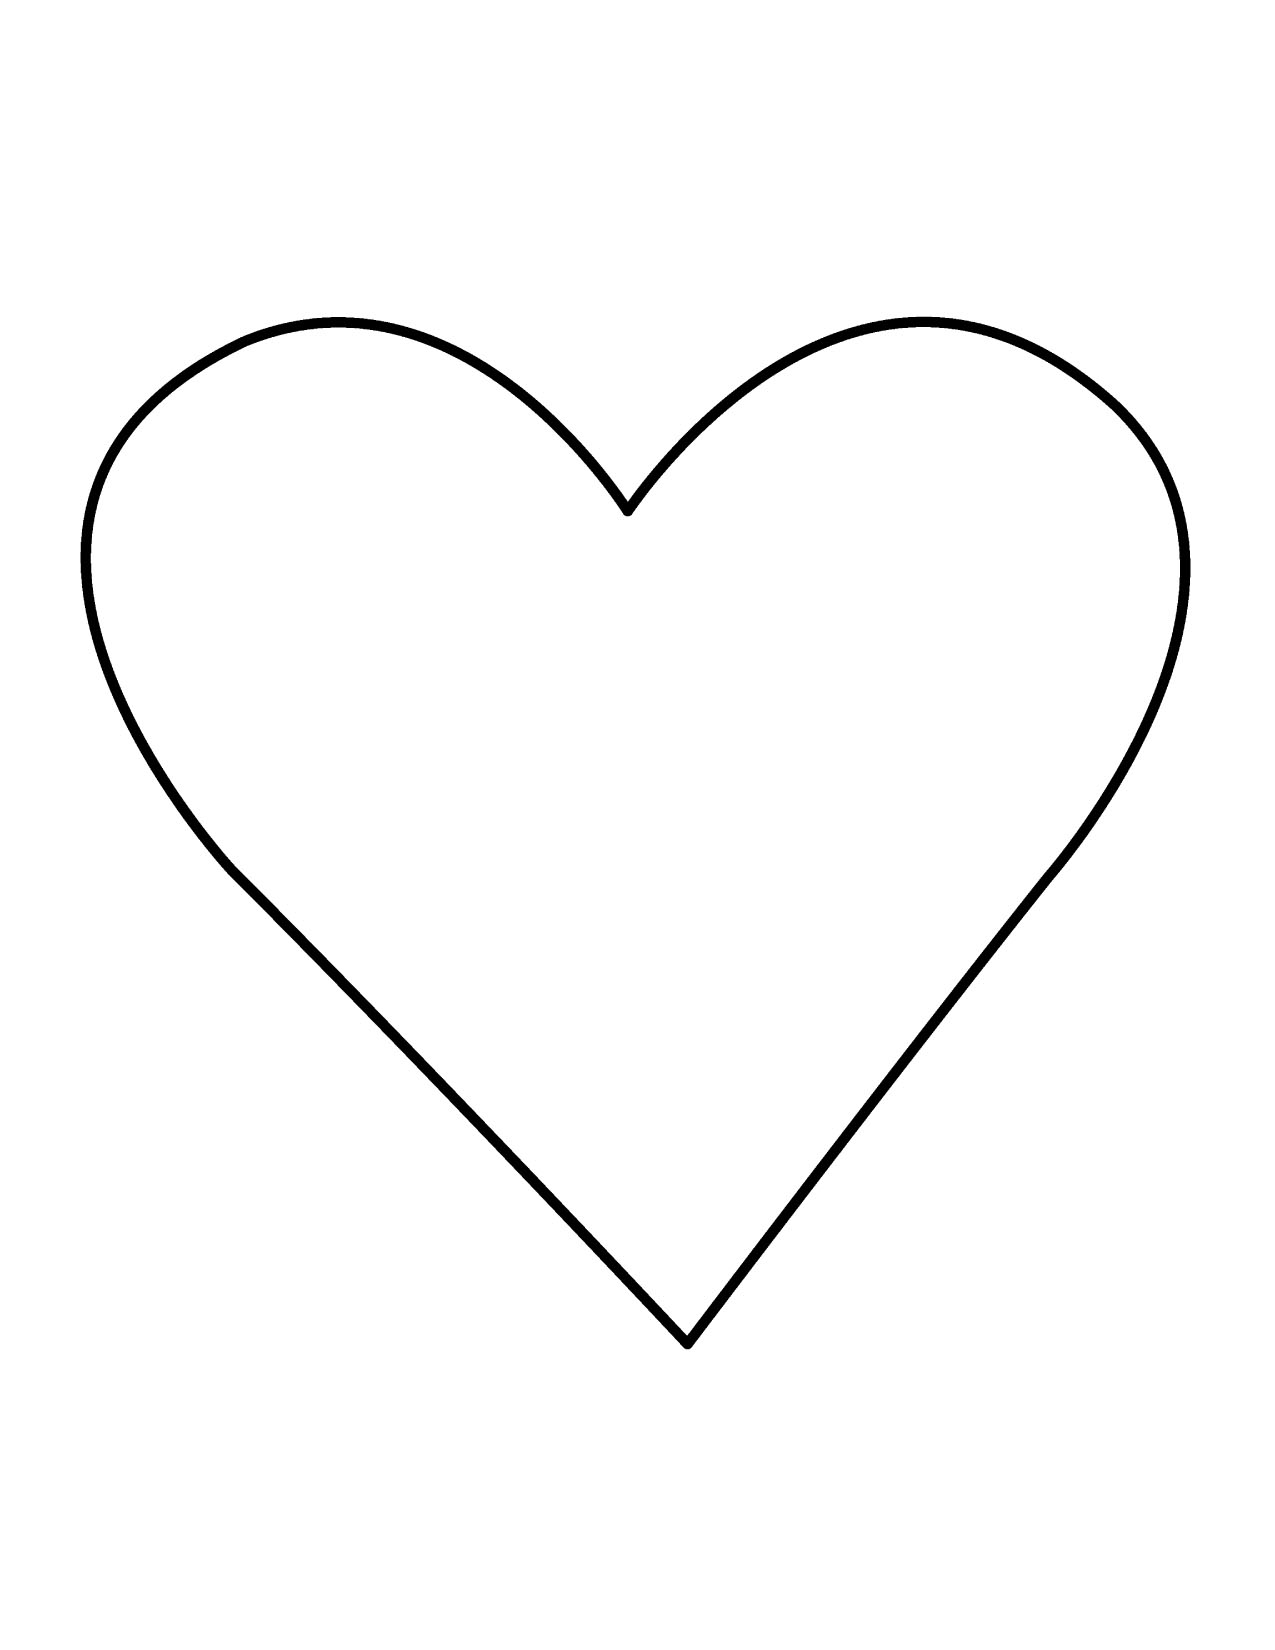 Microsoft clipart heart jpg transparent library Free Heart Image Clipart, Download Free Clip Art, Free Clip ... jpg transparent library